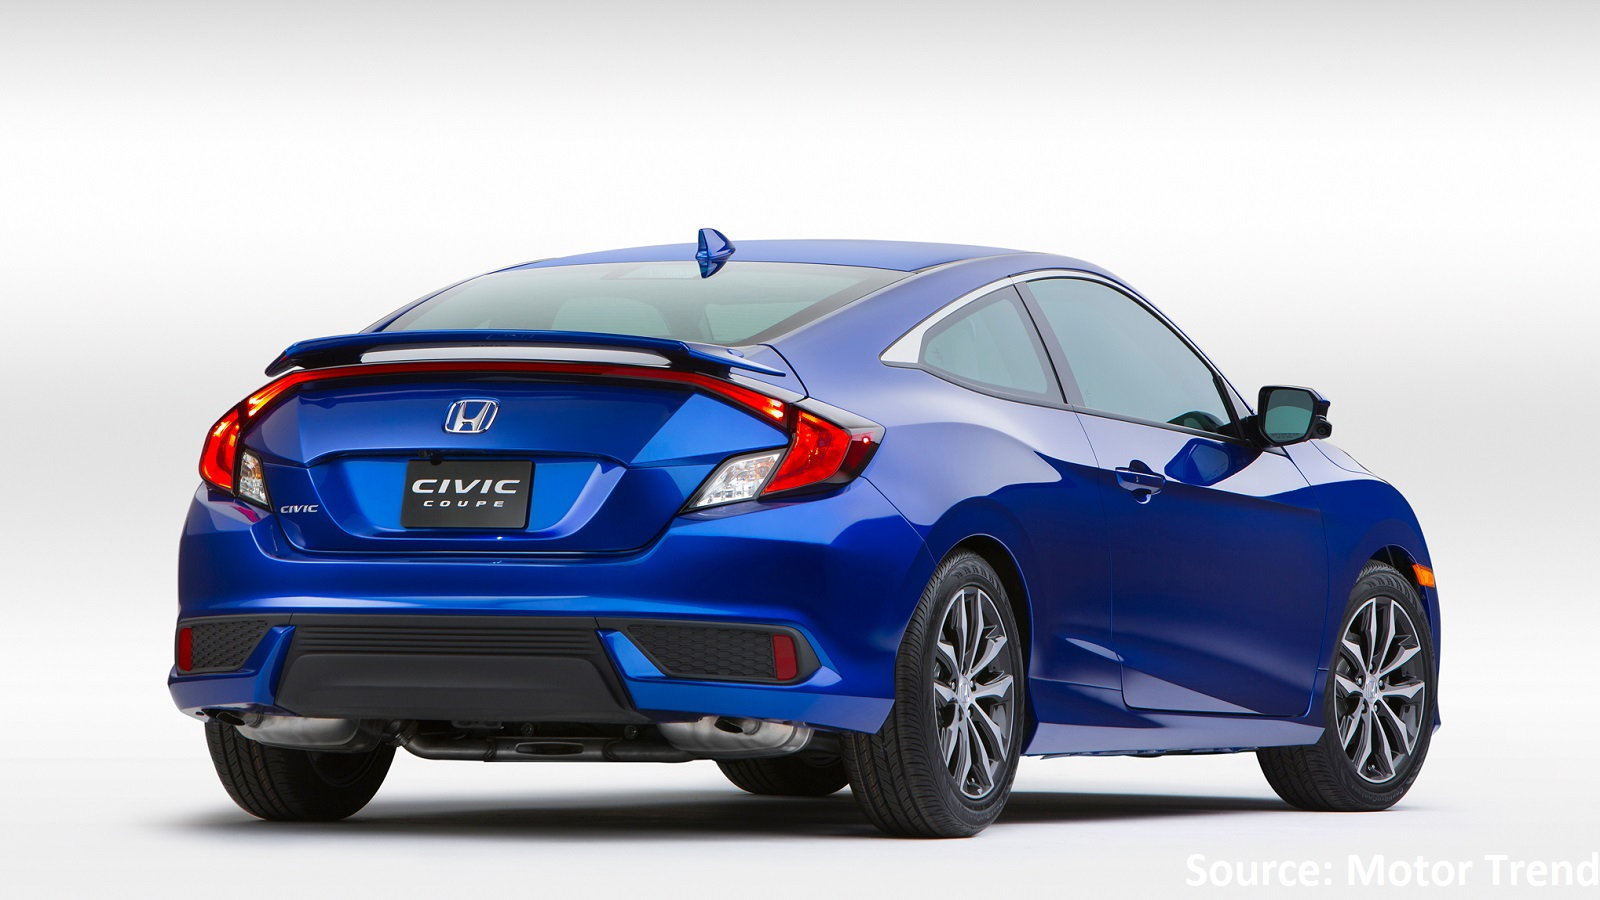 2. Do you like the 10th Gen Civic?